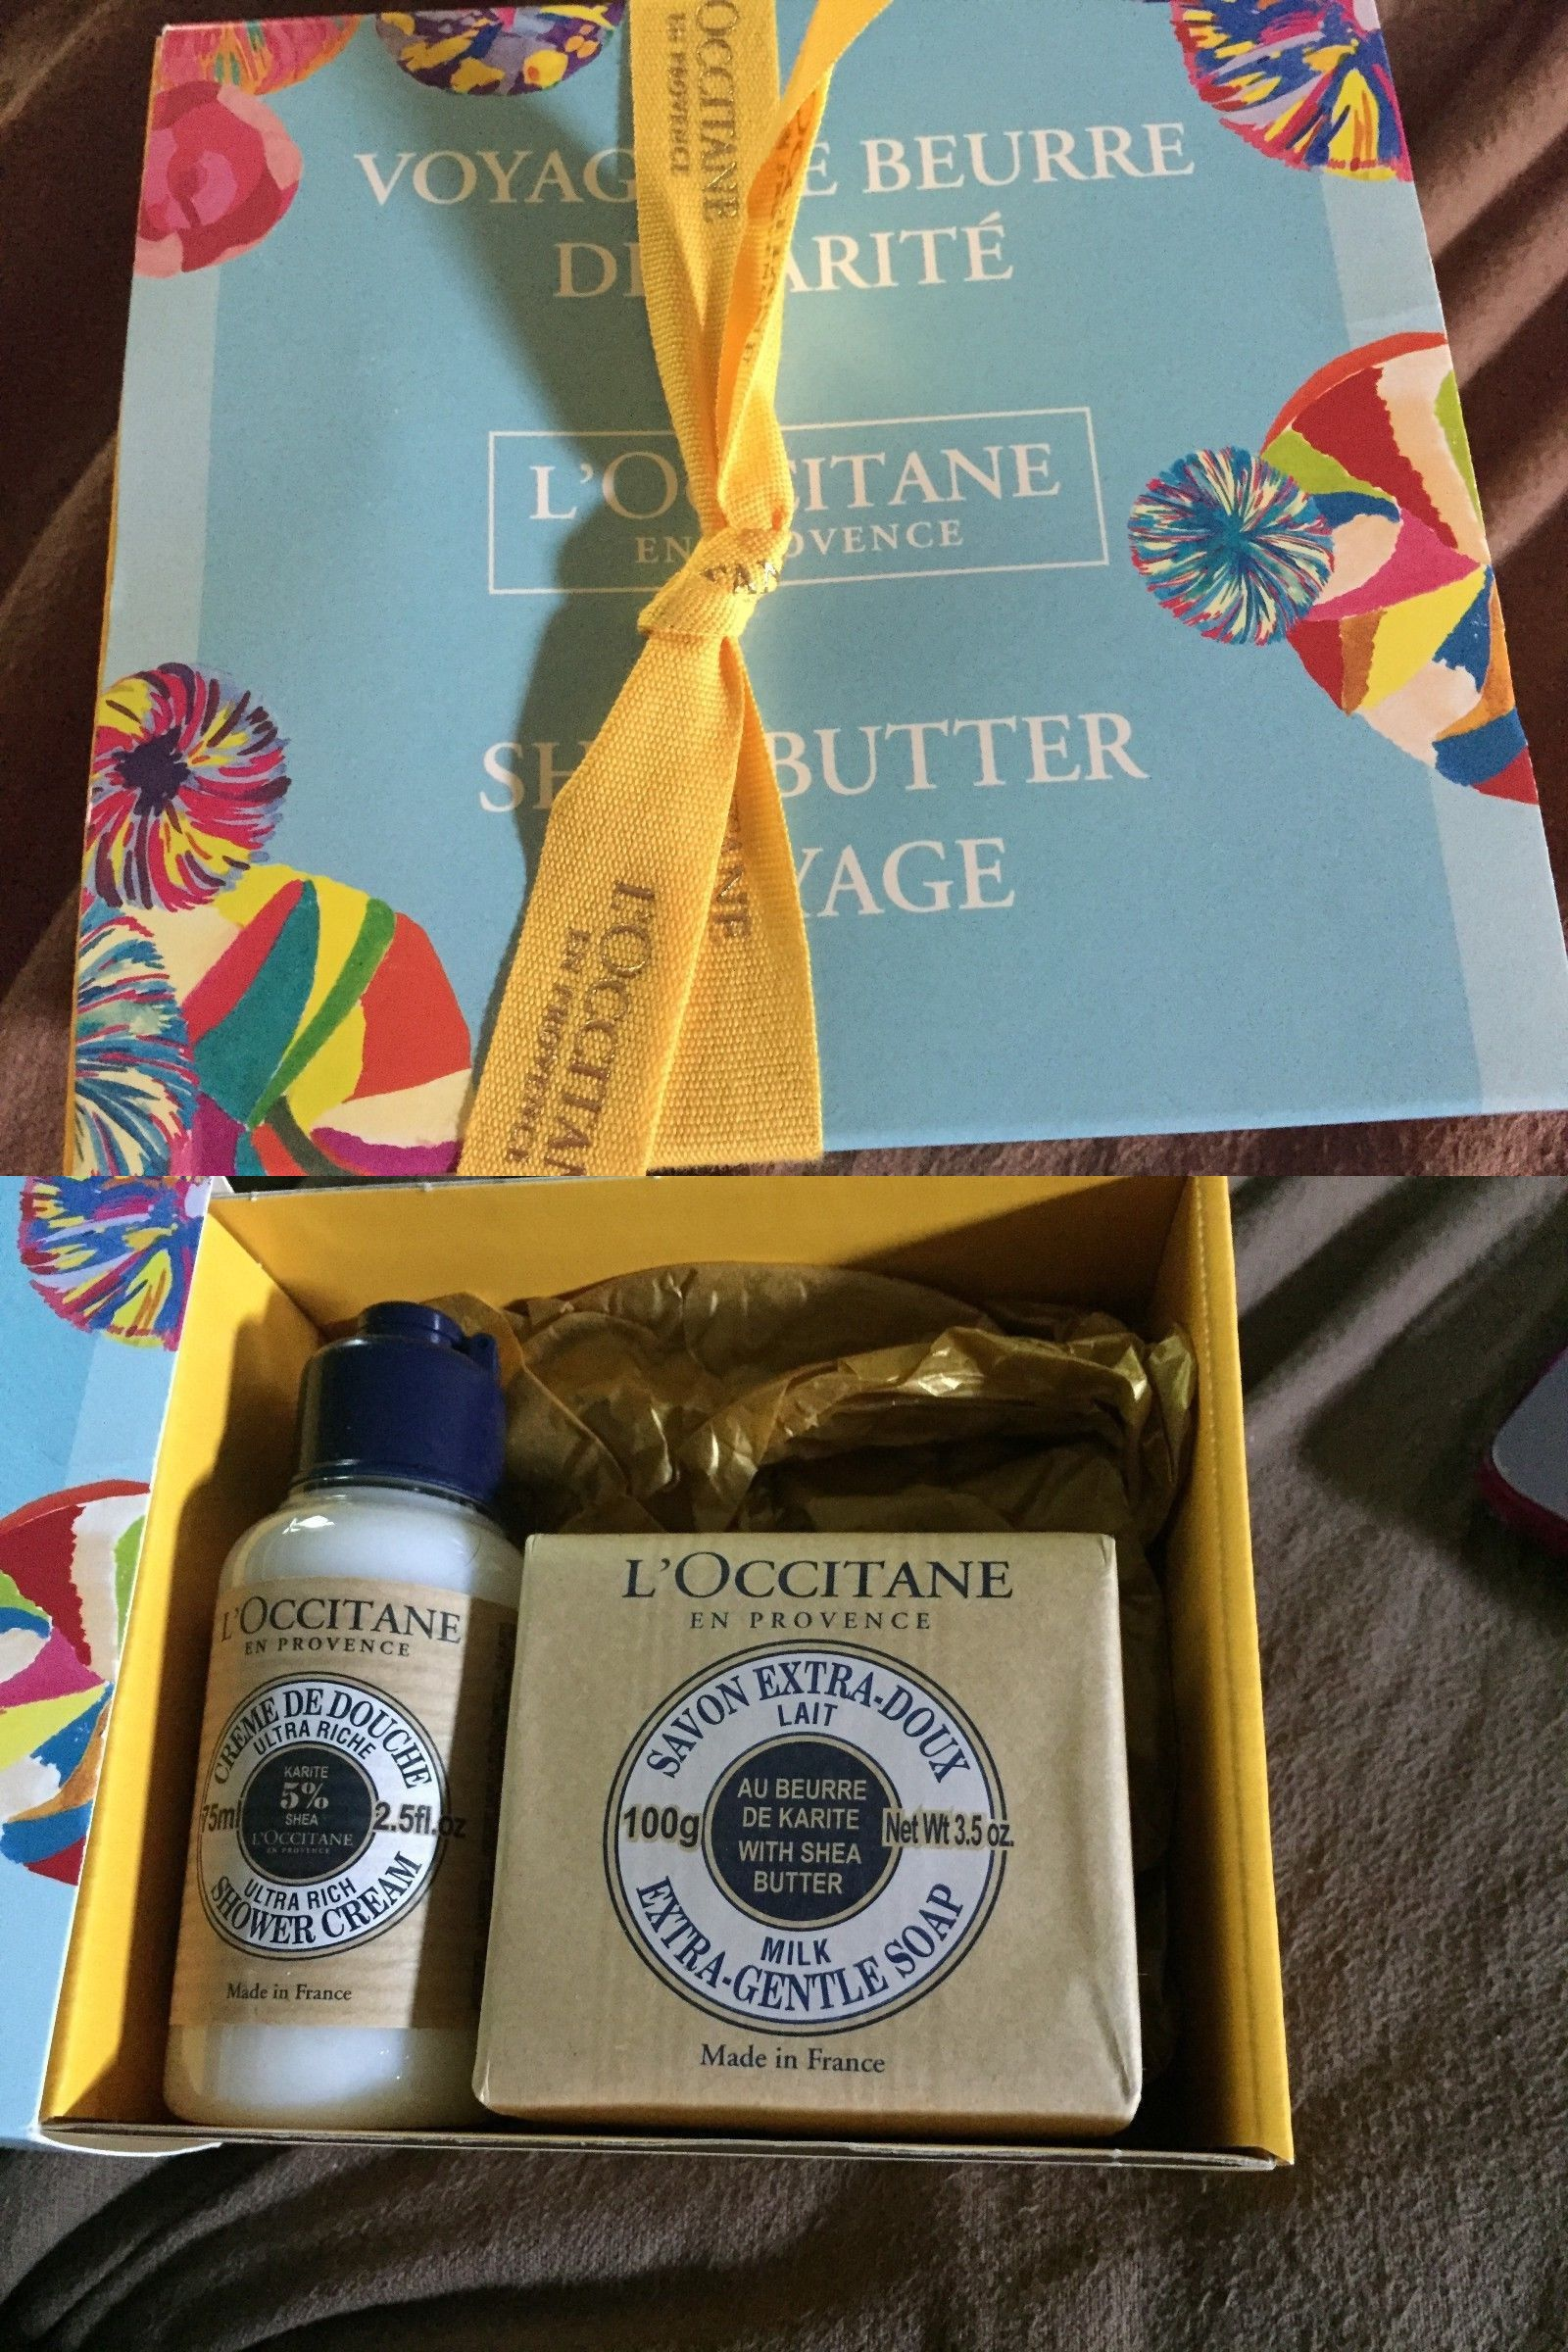 Bath Sets And Kits 67391 L Occitane Shea Butter Voyage Soap Shower Cream Holiday Birthday